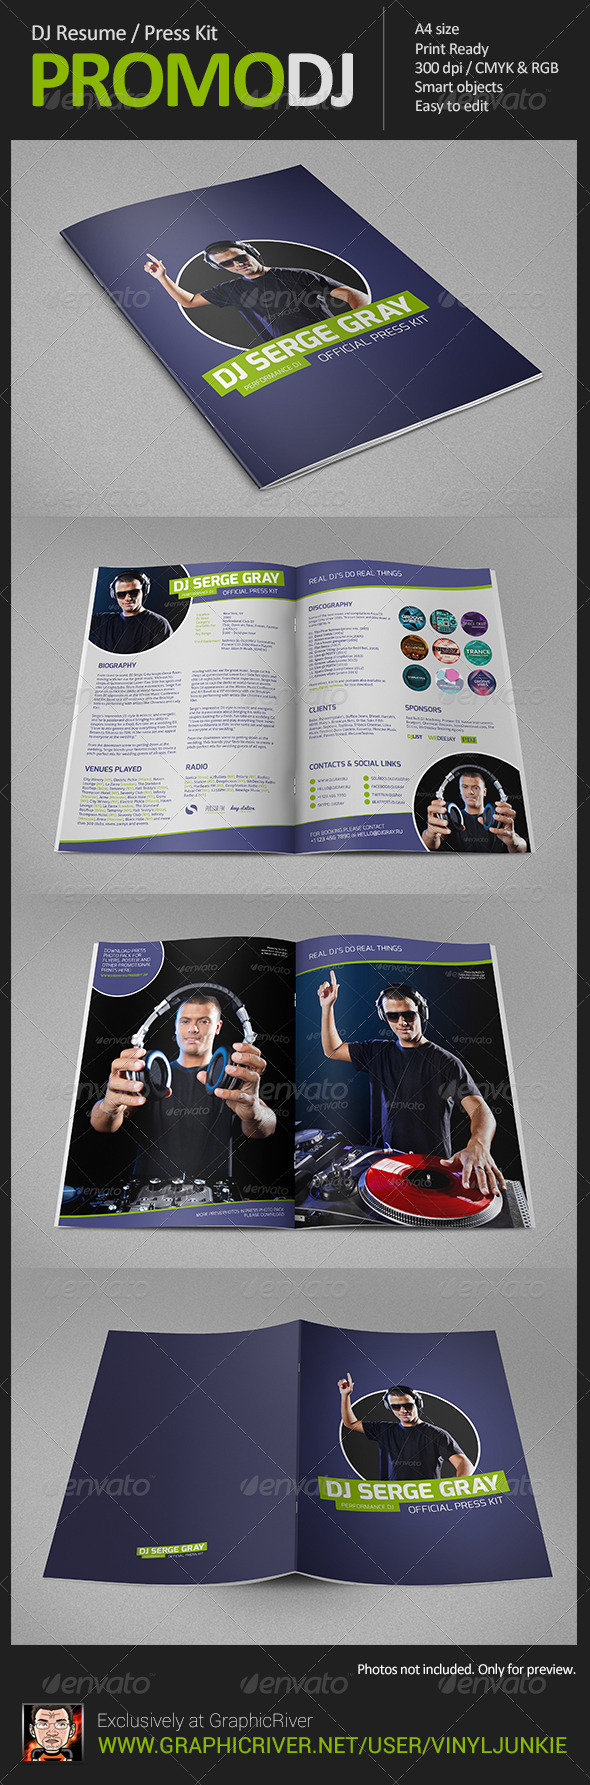 PromoDJ - DJ Resume / Press Kit - Resumes Stationery